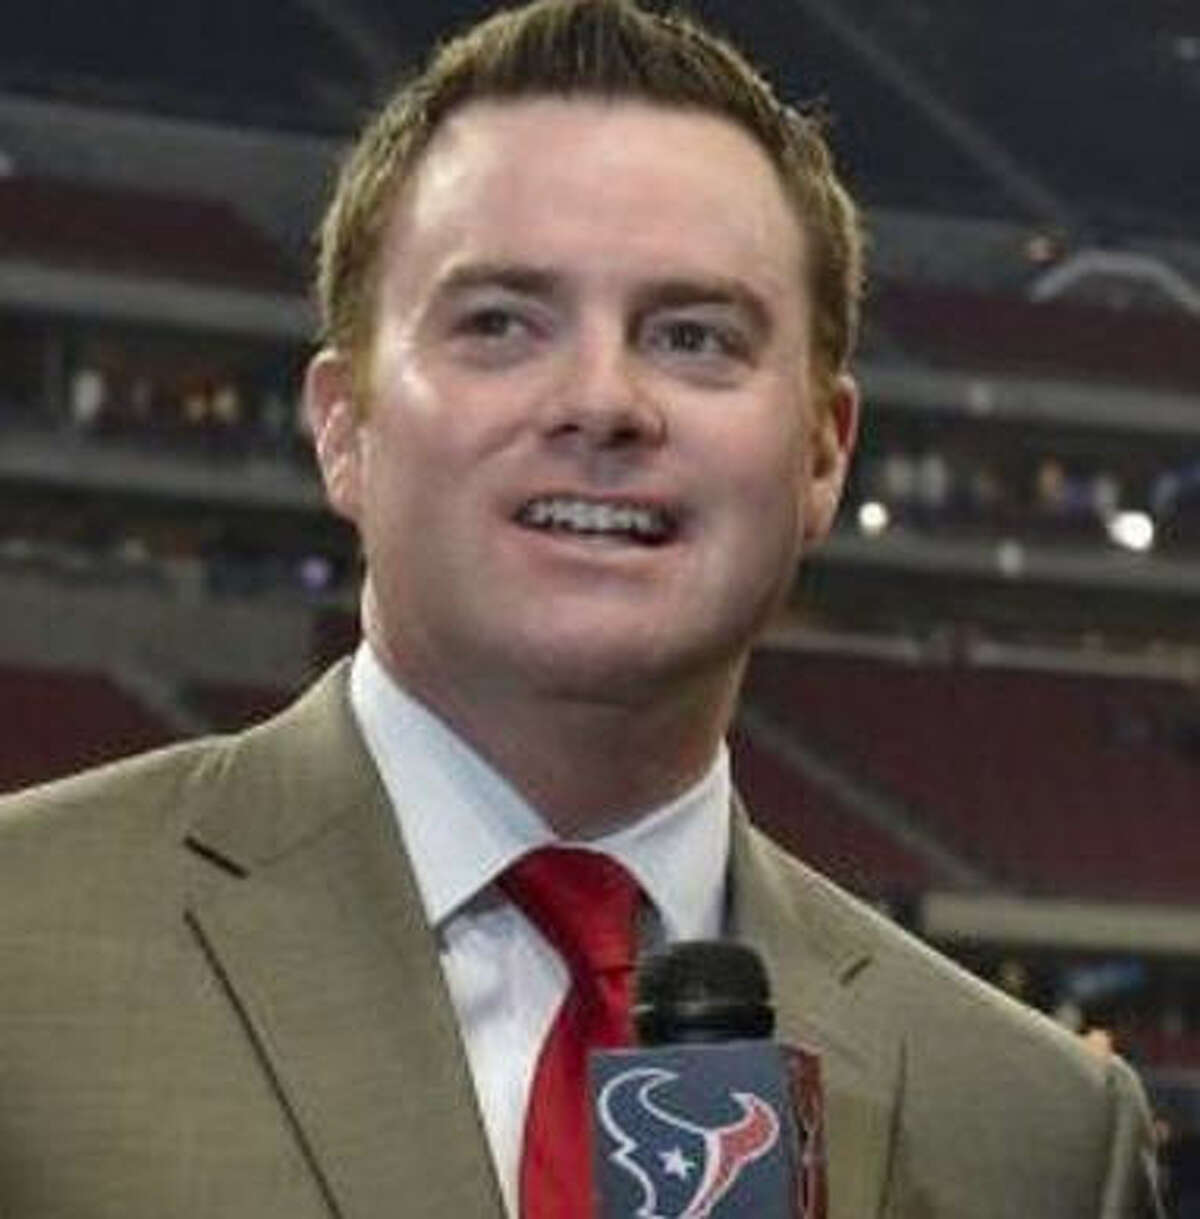 """Drew Dougherty from Houston Texans TV """"My favorite toy was my BMX bike when I was a 1st grader. I'd worn the tires off my first bike from skidding out too much, so this was an upgrade. I was also pumped when I got Tecmo Bowl in 6th grade."""""""